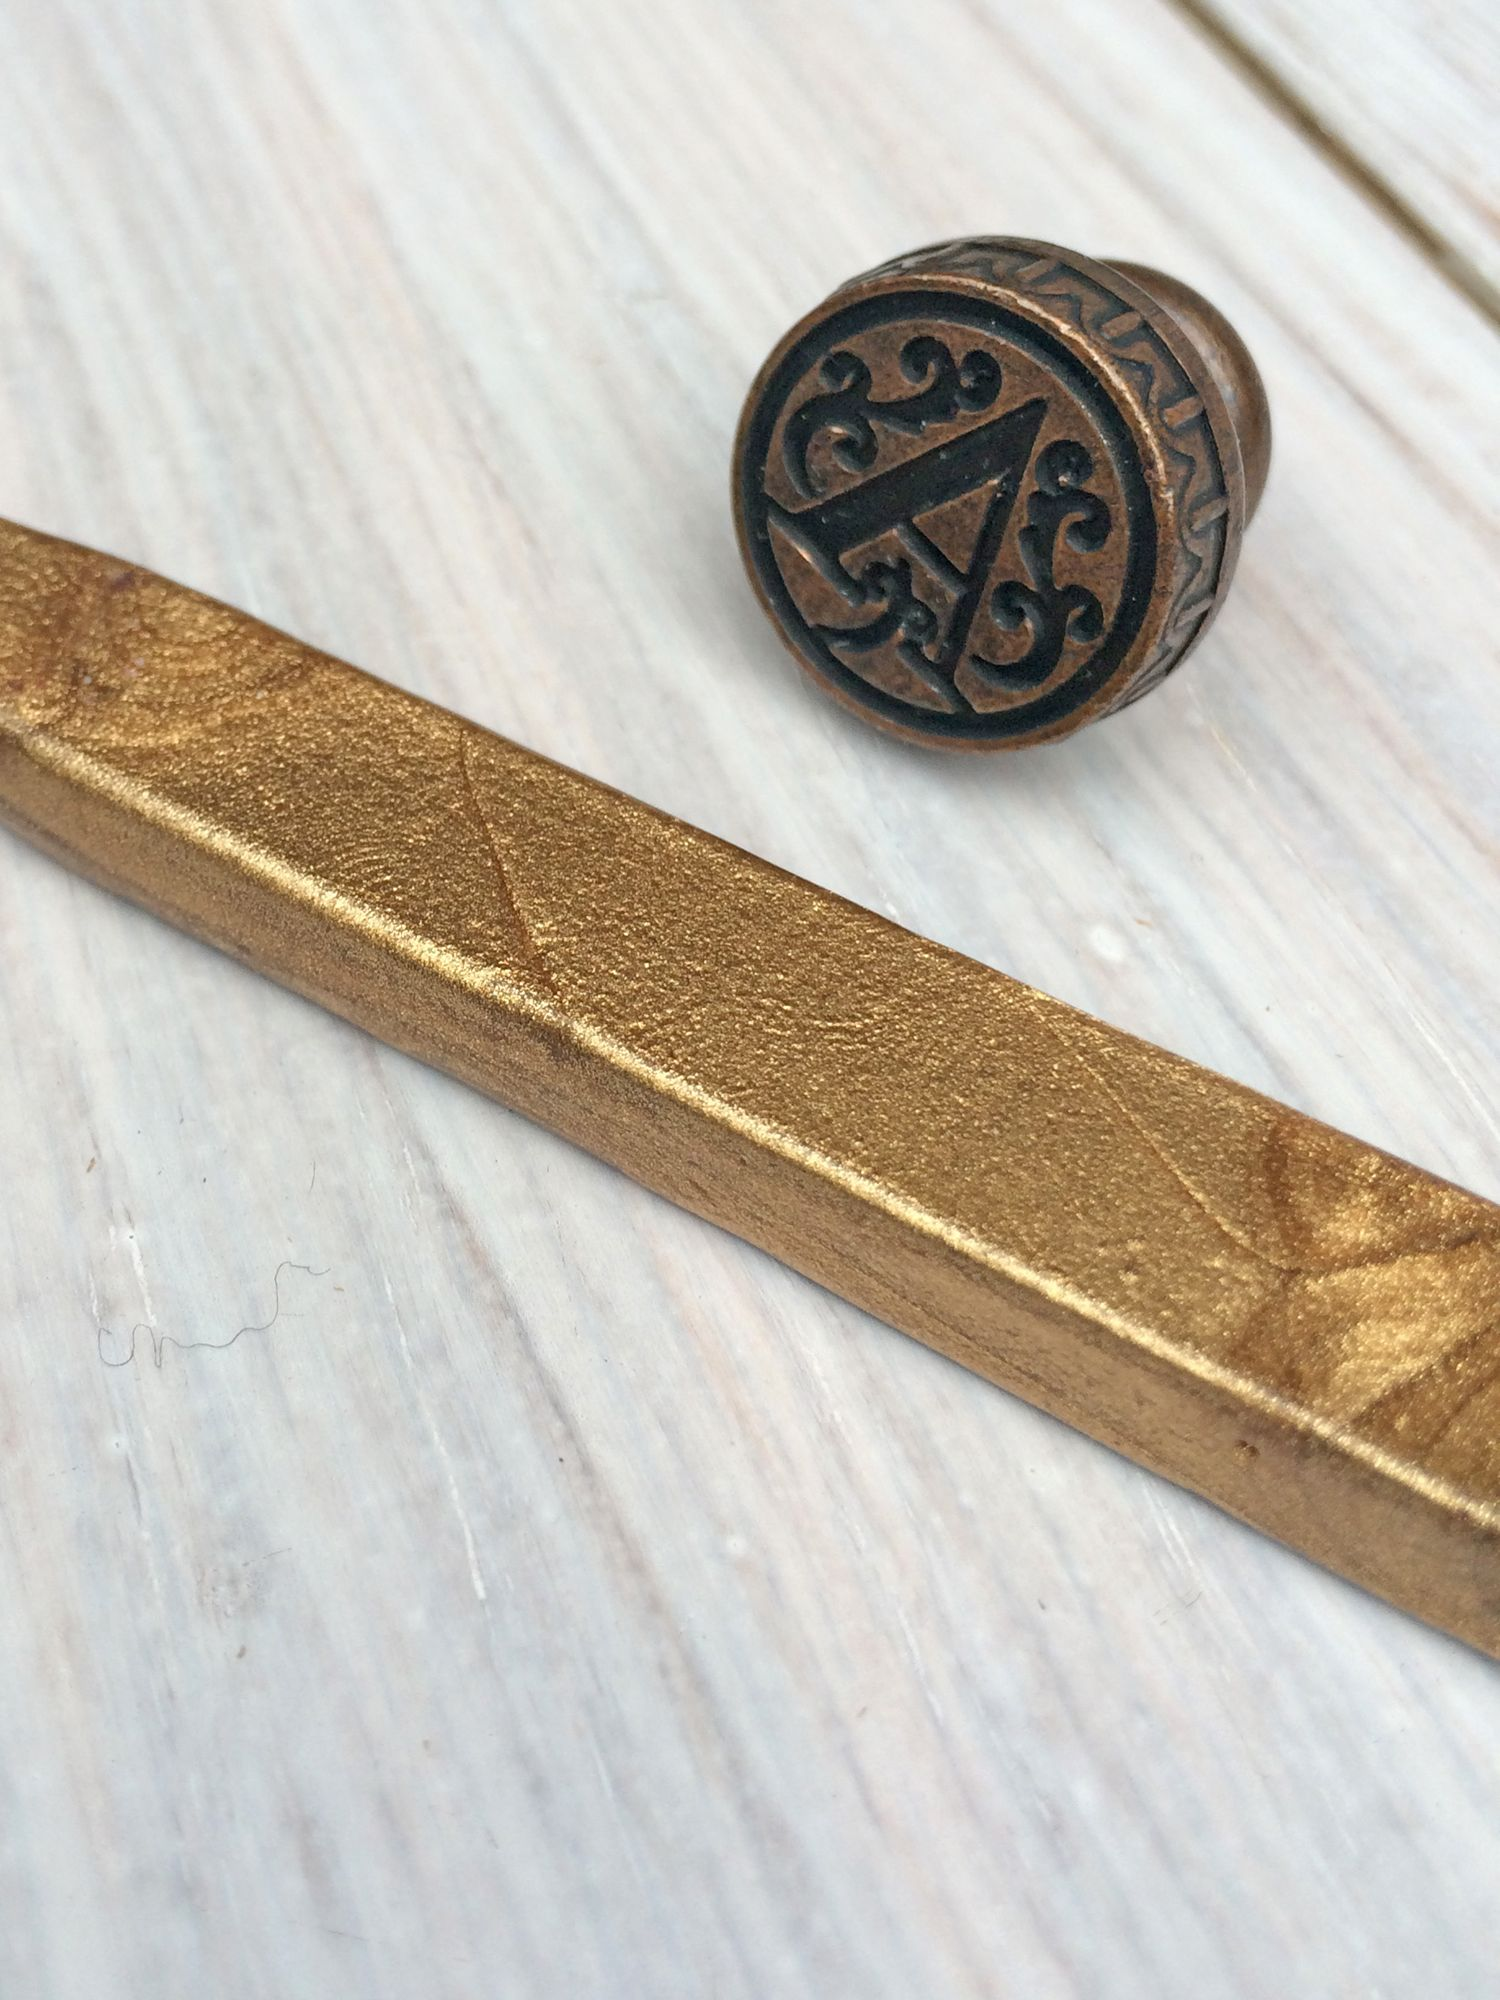 StompStamps StompStamps Personalised Brass Wax Seal Initial and Wax Stick